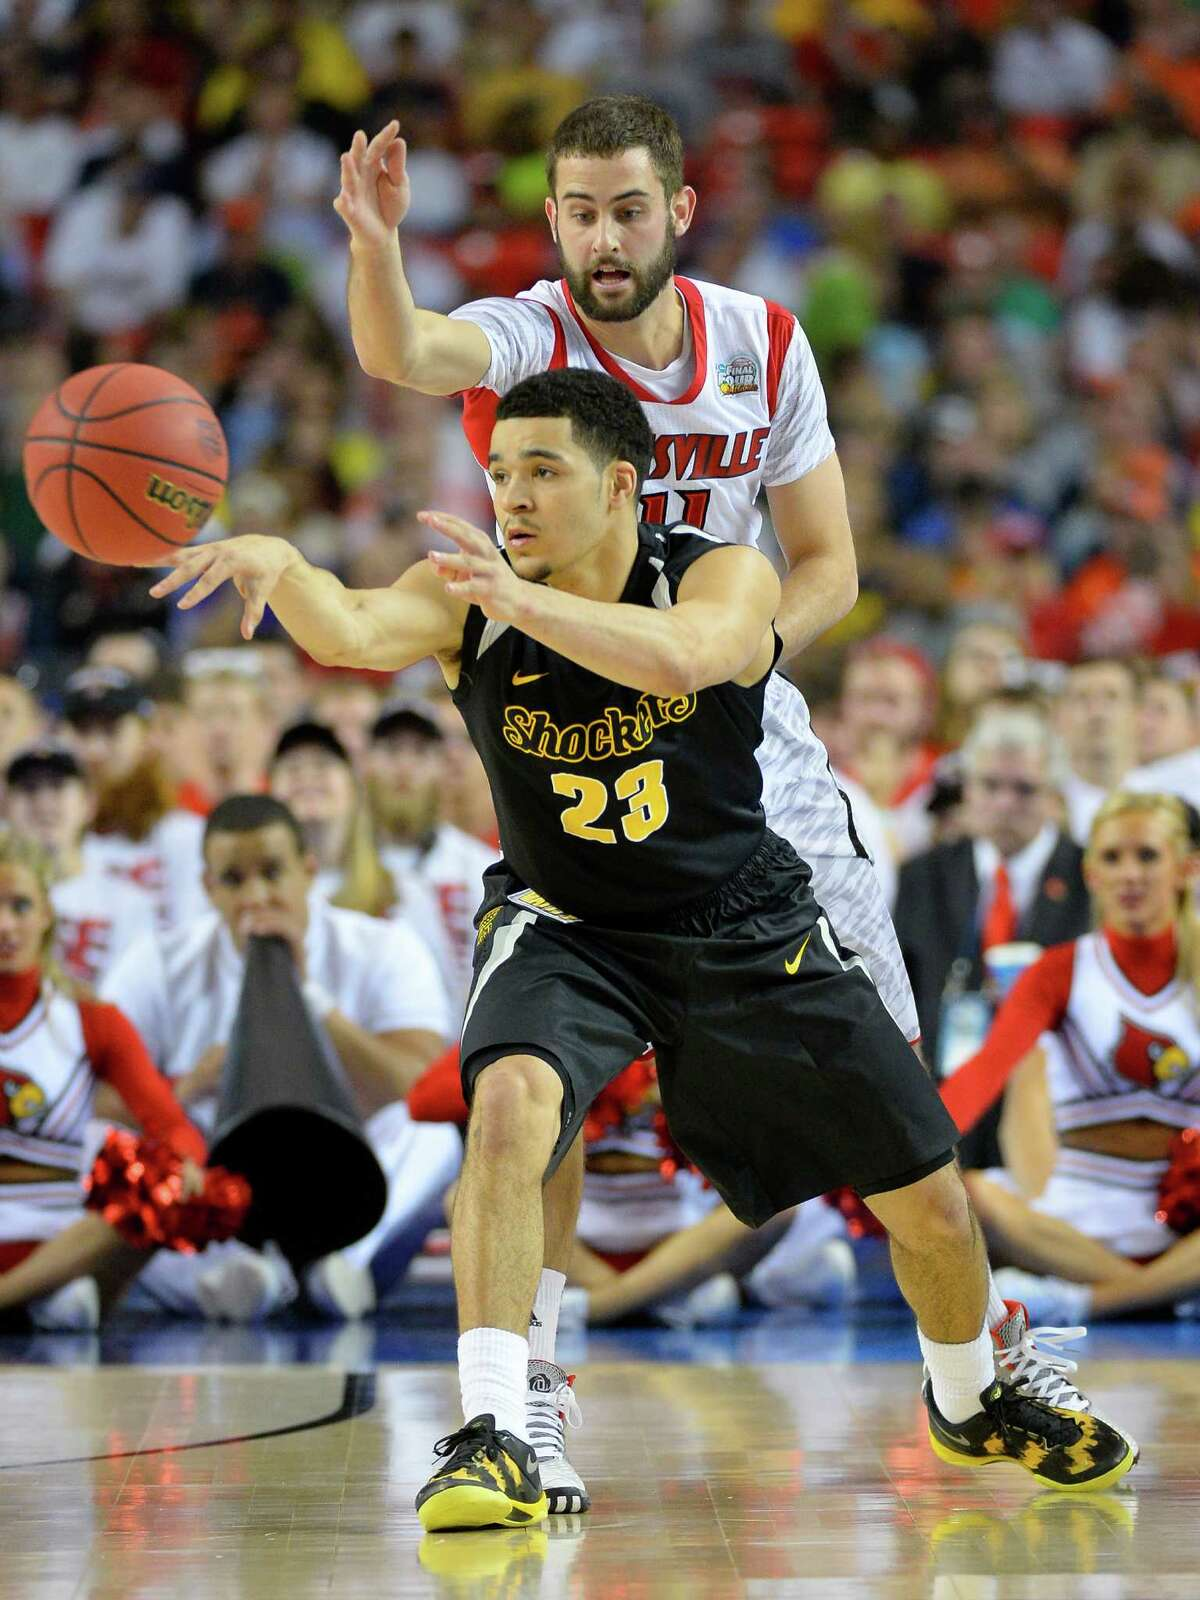 Road to Atlanta: Look back at the full March Badness bracket Live Updates: Follow all the Final Four action Wichita State guard Fred VanVleet (23) passes the ball in front of the defense of Luke Hancock (11) of the Louisville Cardinals in the first half of a semi-final matchup in the NCAA Men's Basketball Championship at the Georgia Dome in Atlanta, Georgia, Saturday, April 6, 2013.